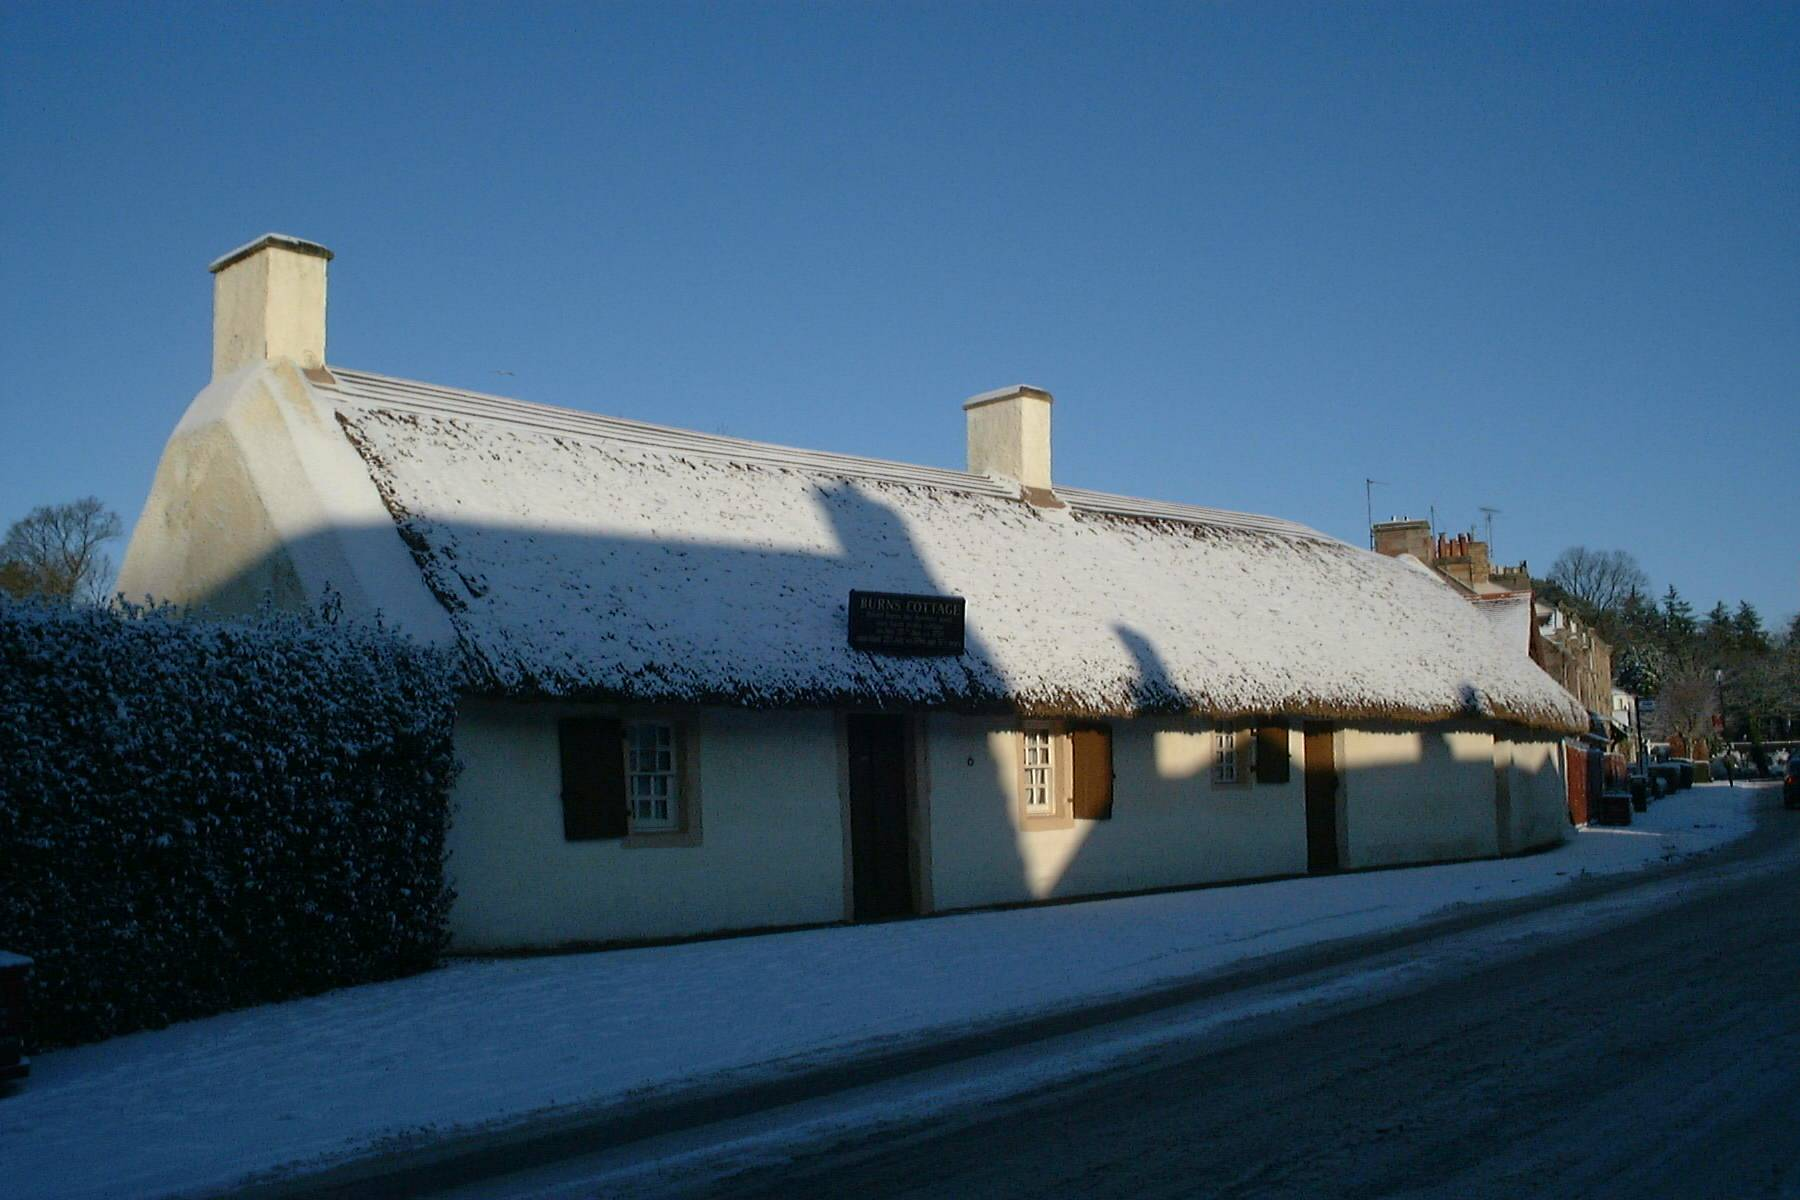 Burns Cottage, Ayr Jan 5th 2010